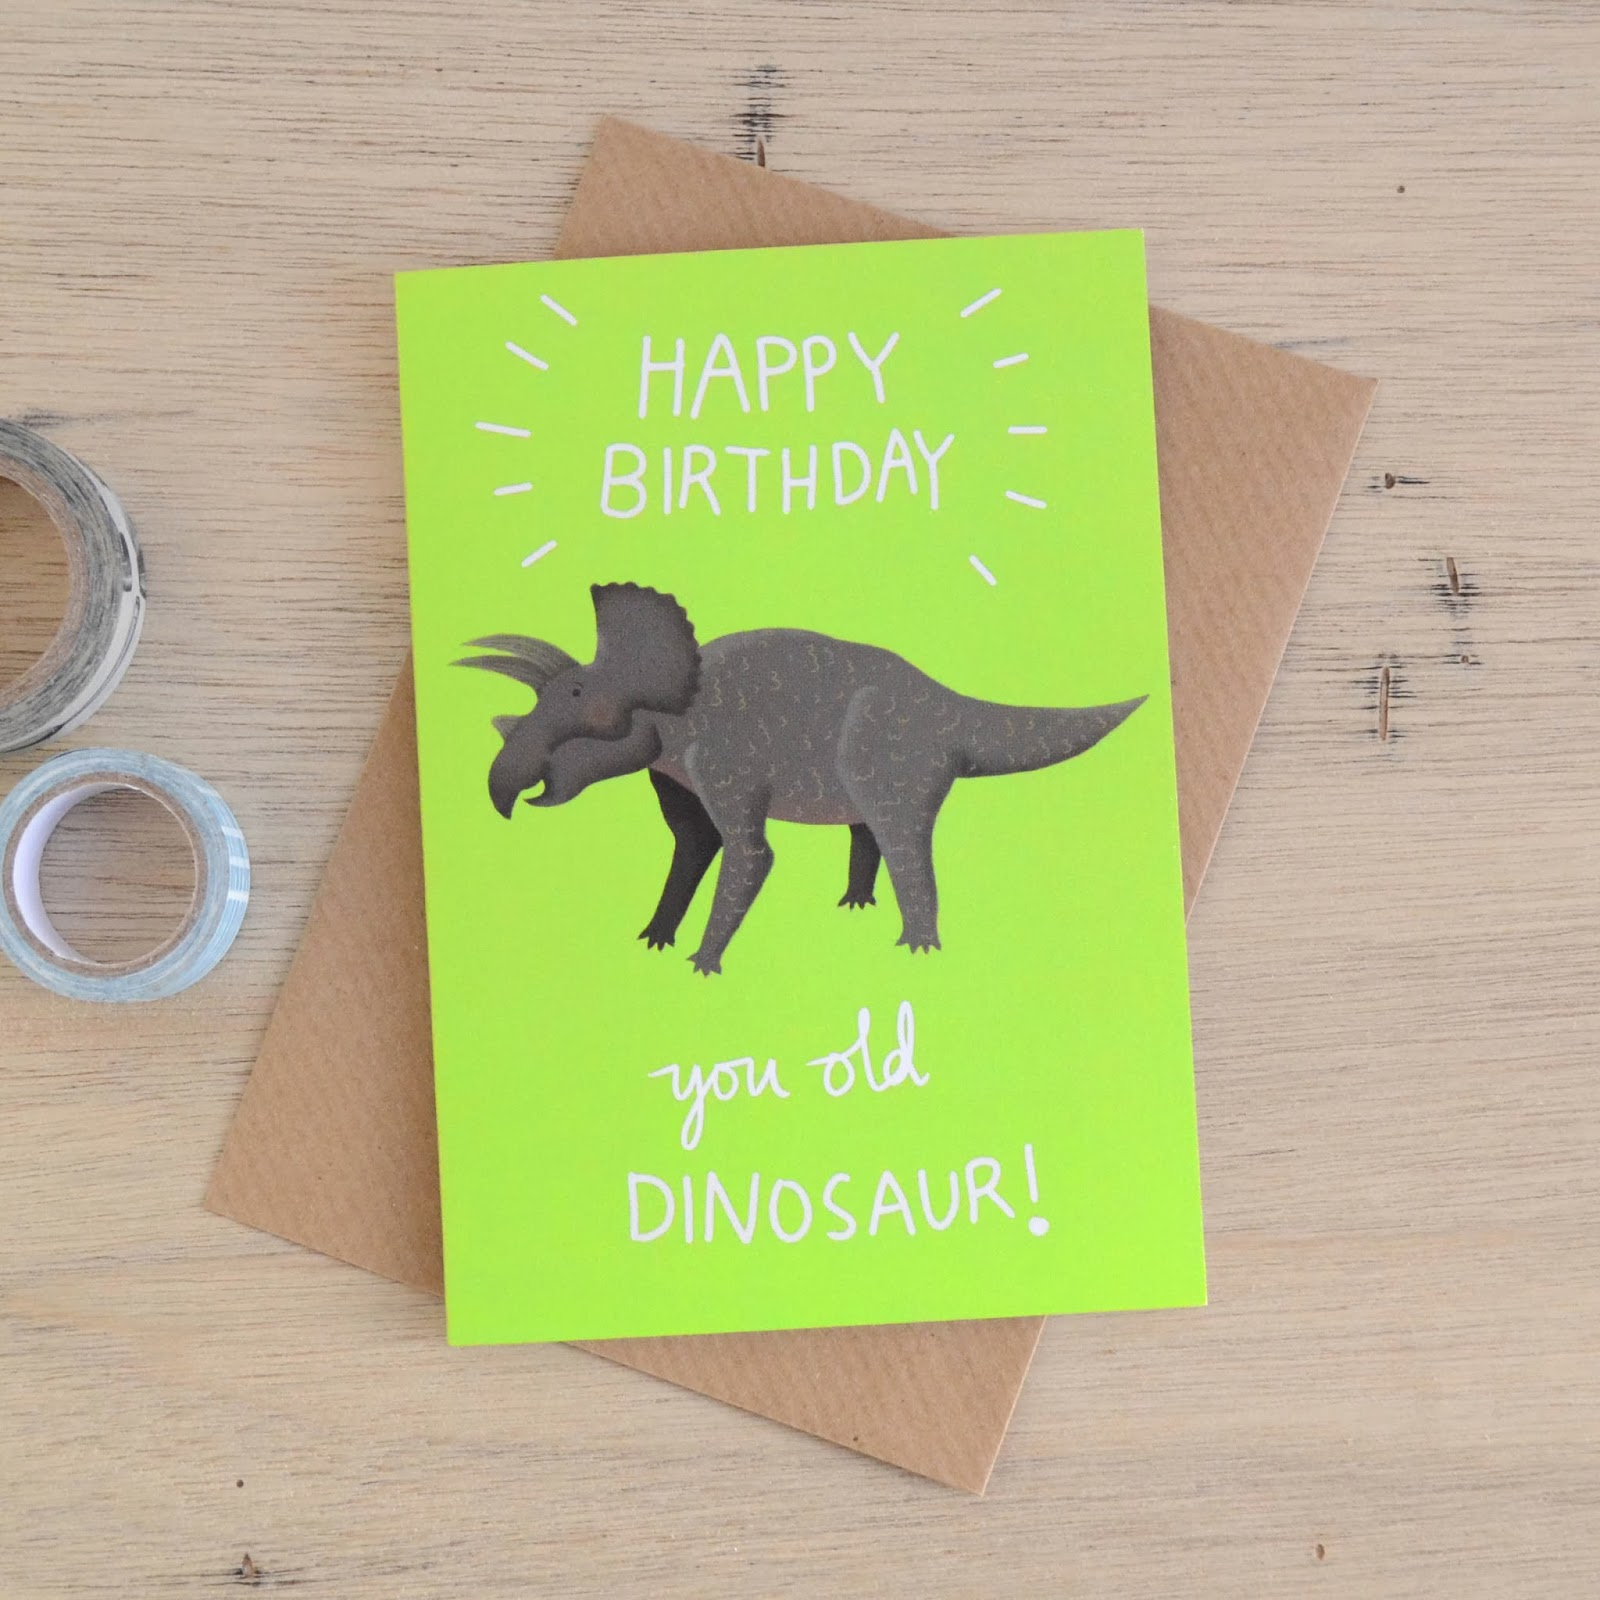 http://folksy.com/items/5725531-You-Old-Dinosaur-Birthday-Card